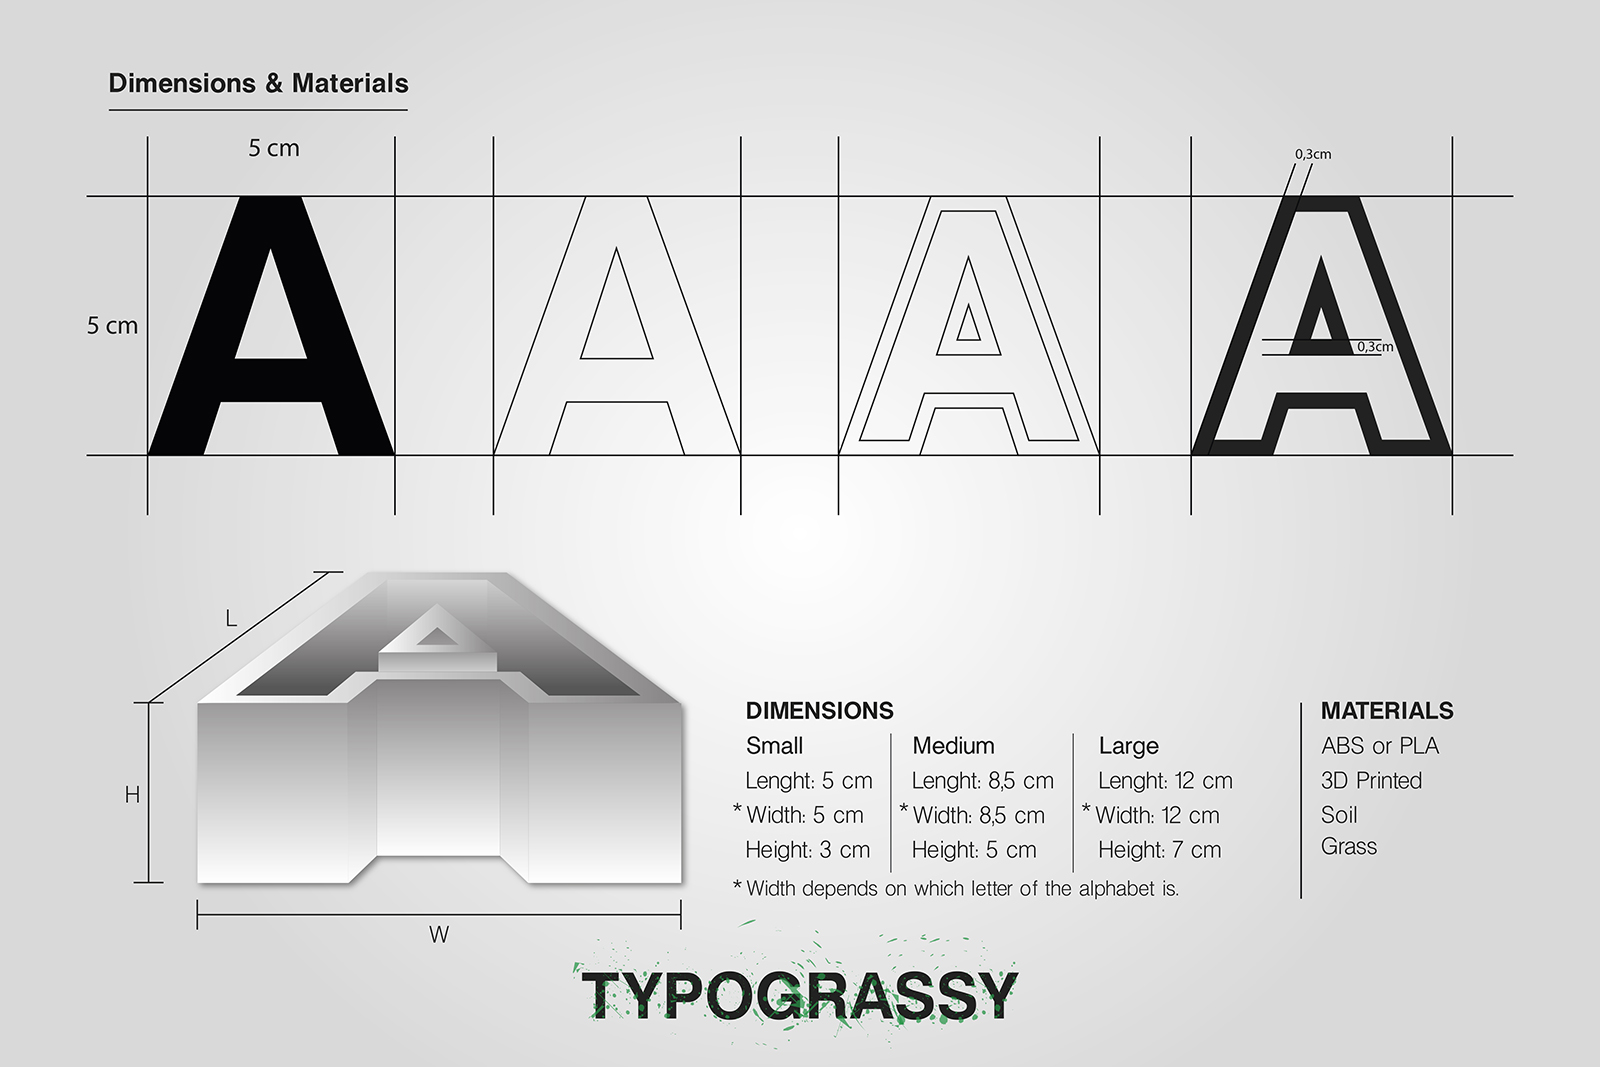 3D Printed letters and symbols_dimensions_Typograssy_yianart.com